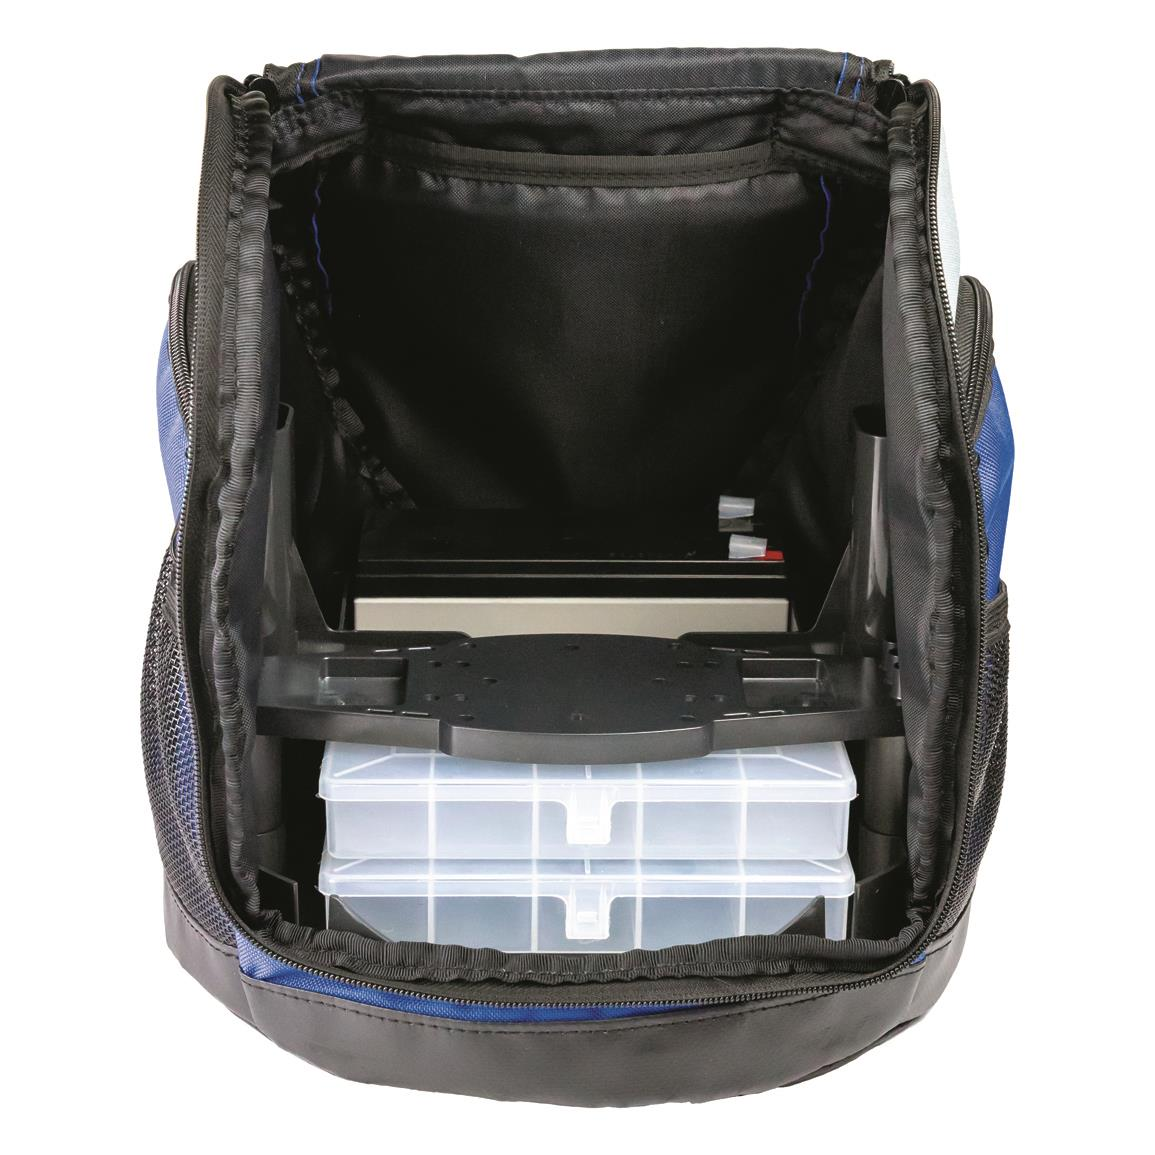 Includes weatherproof gear bag with adjustable display platform, Ice Fishing Transducer, power cable, 2 utility boxes, 12V battery, and battery charger.